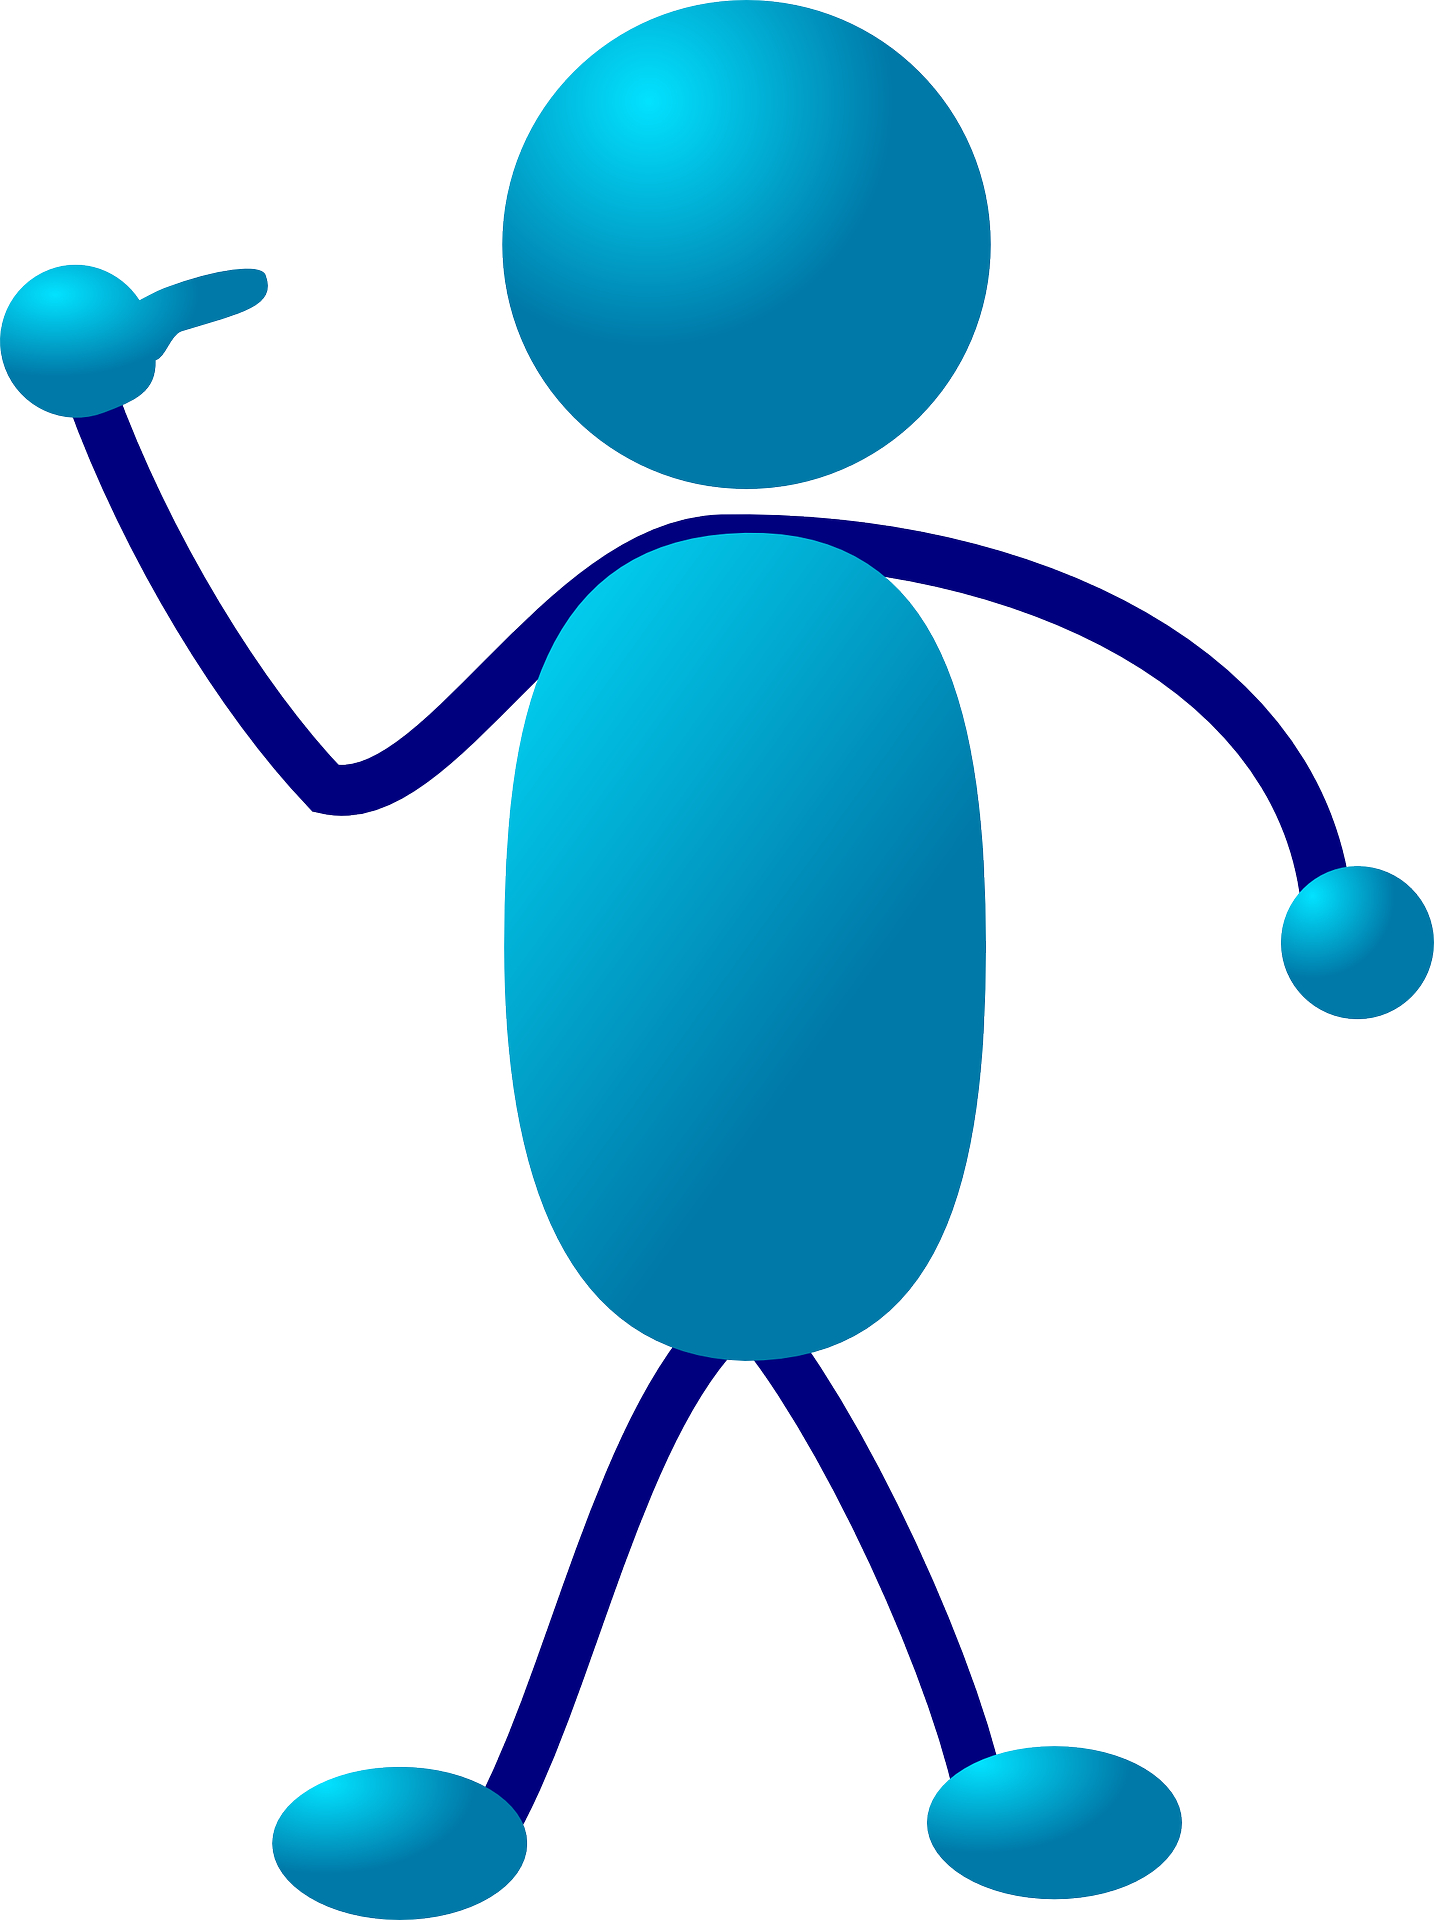 Blue people symbol vector